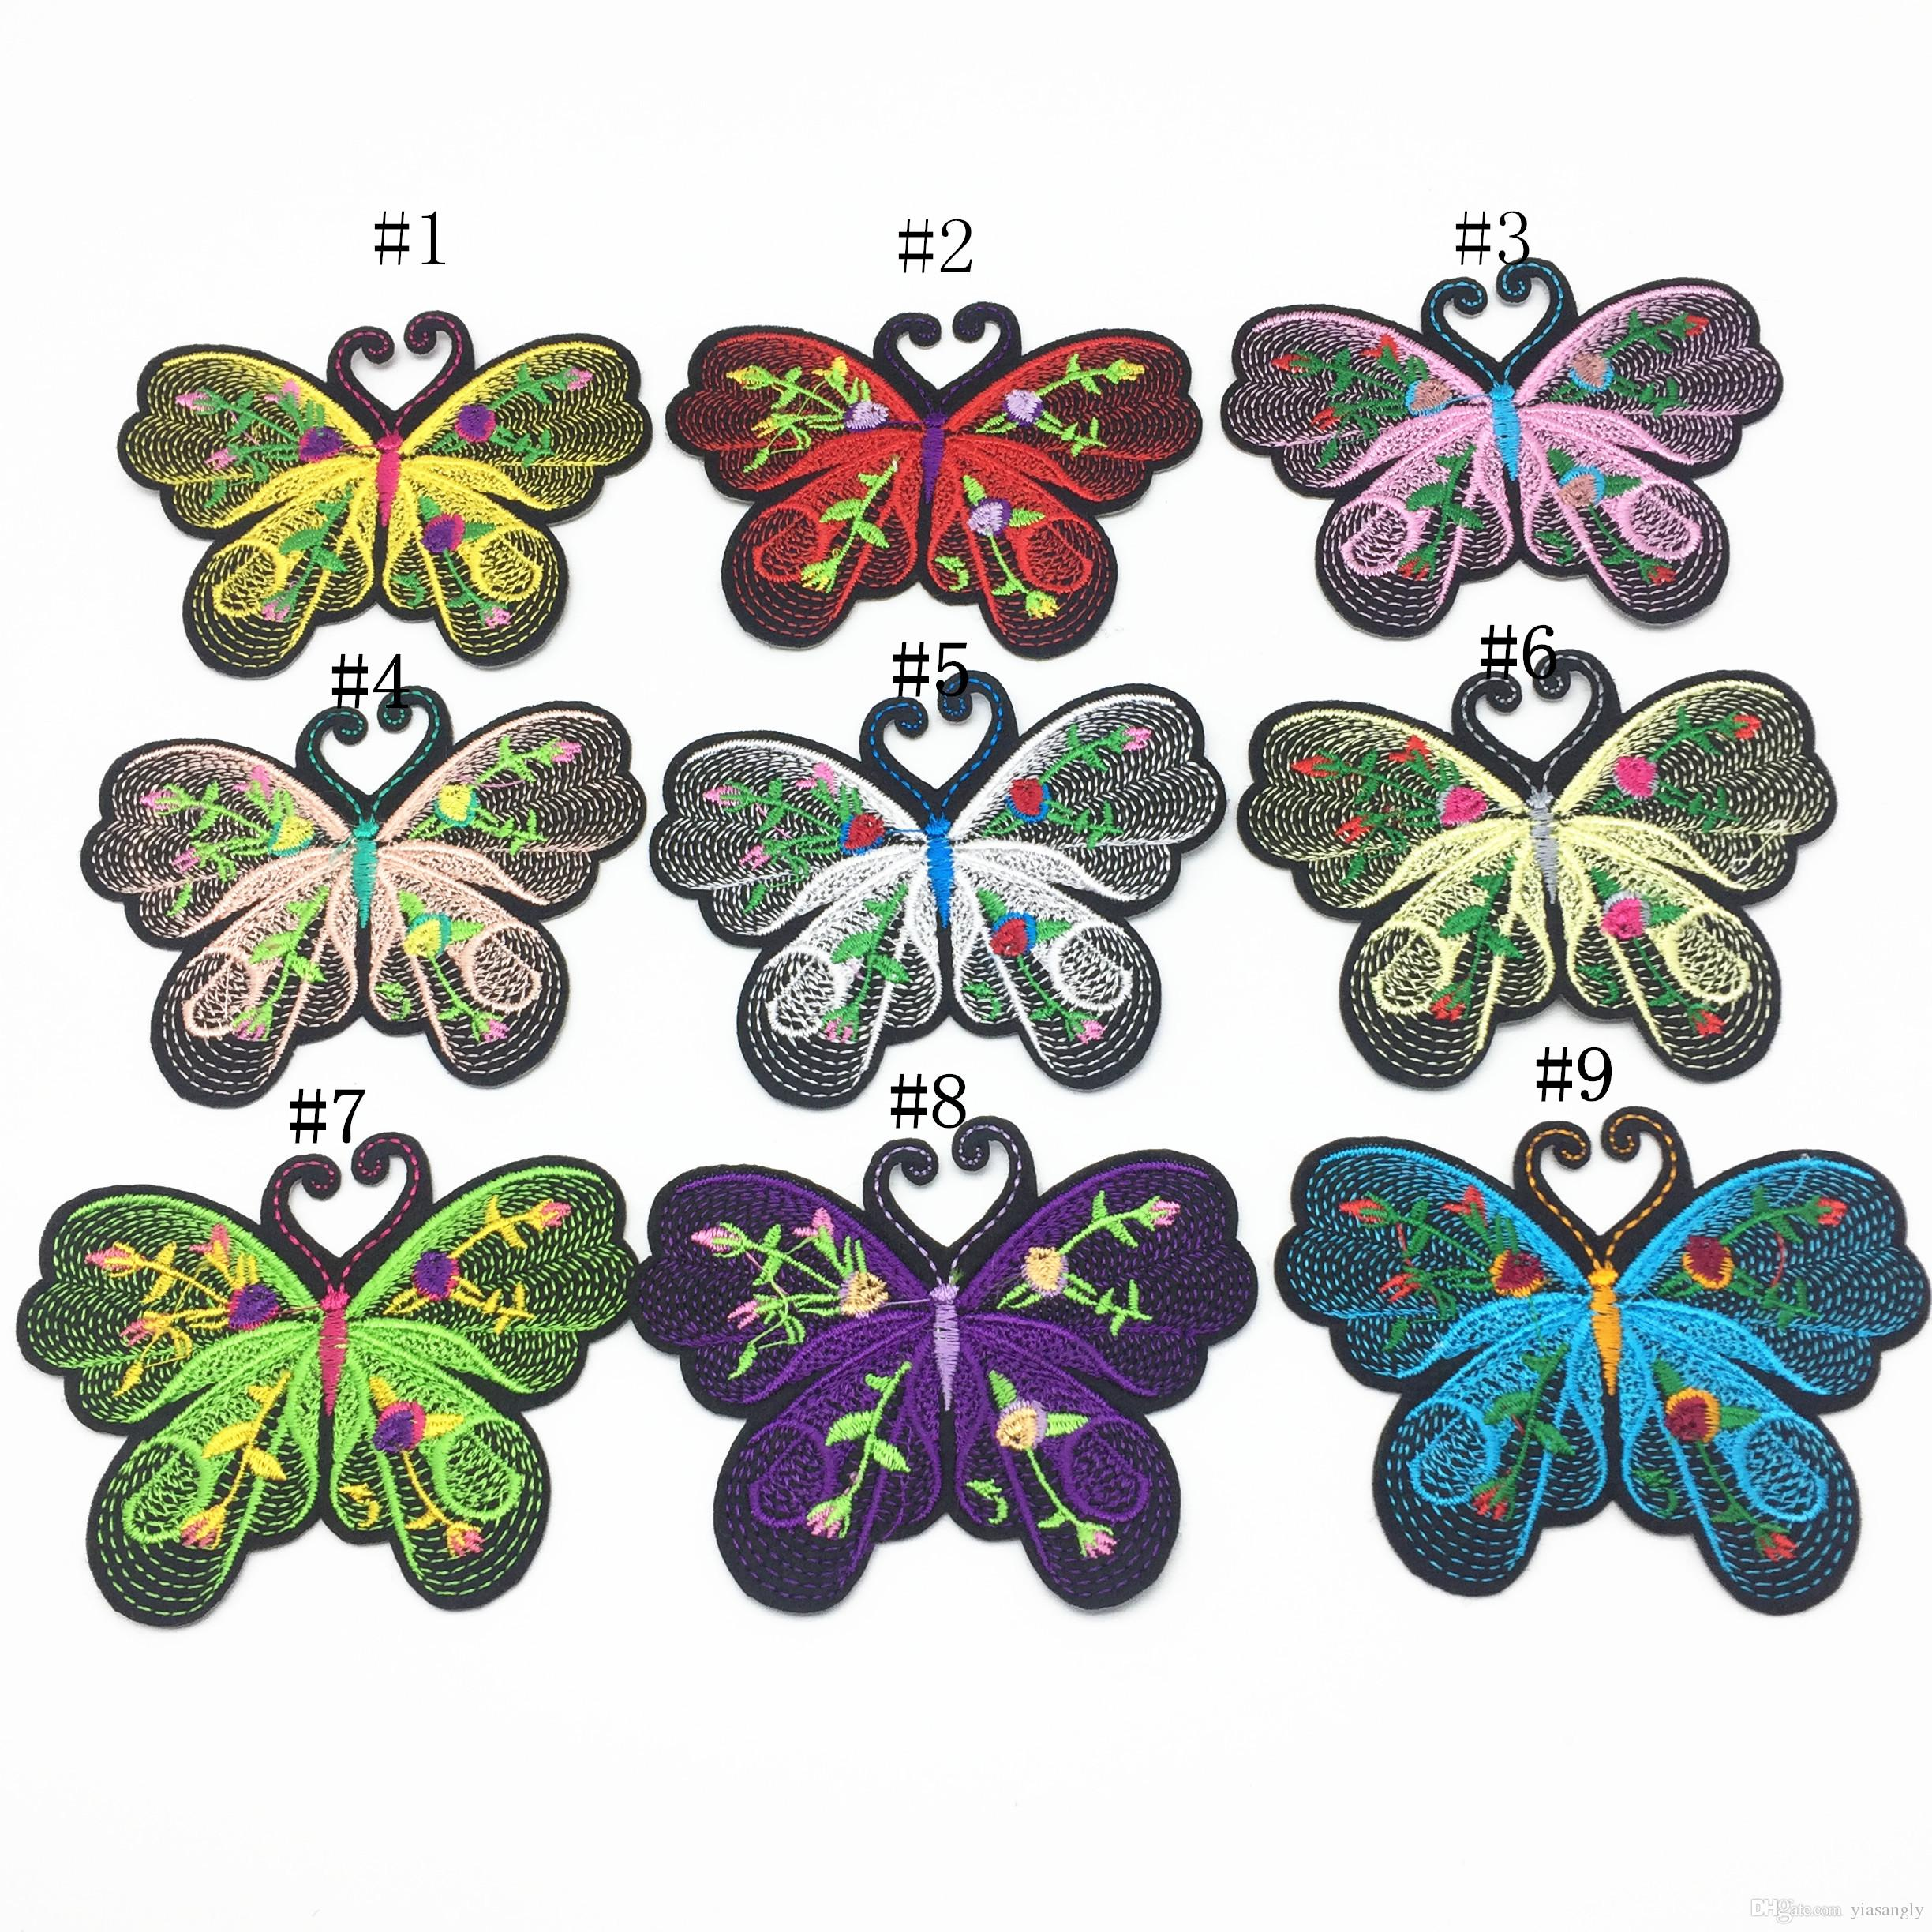 9pcs 80x65mm Mixed Butterfly Embroidered Iron on Clothing Patches Applique Sewing DIY Patch Accessory